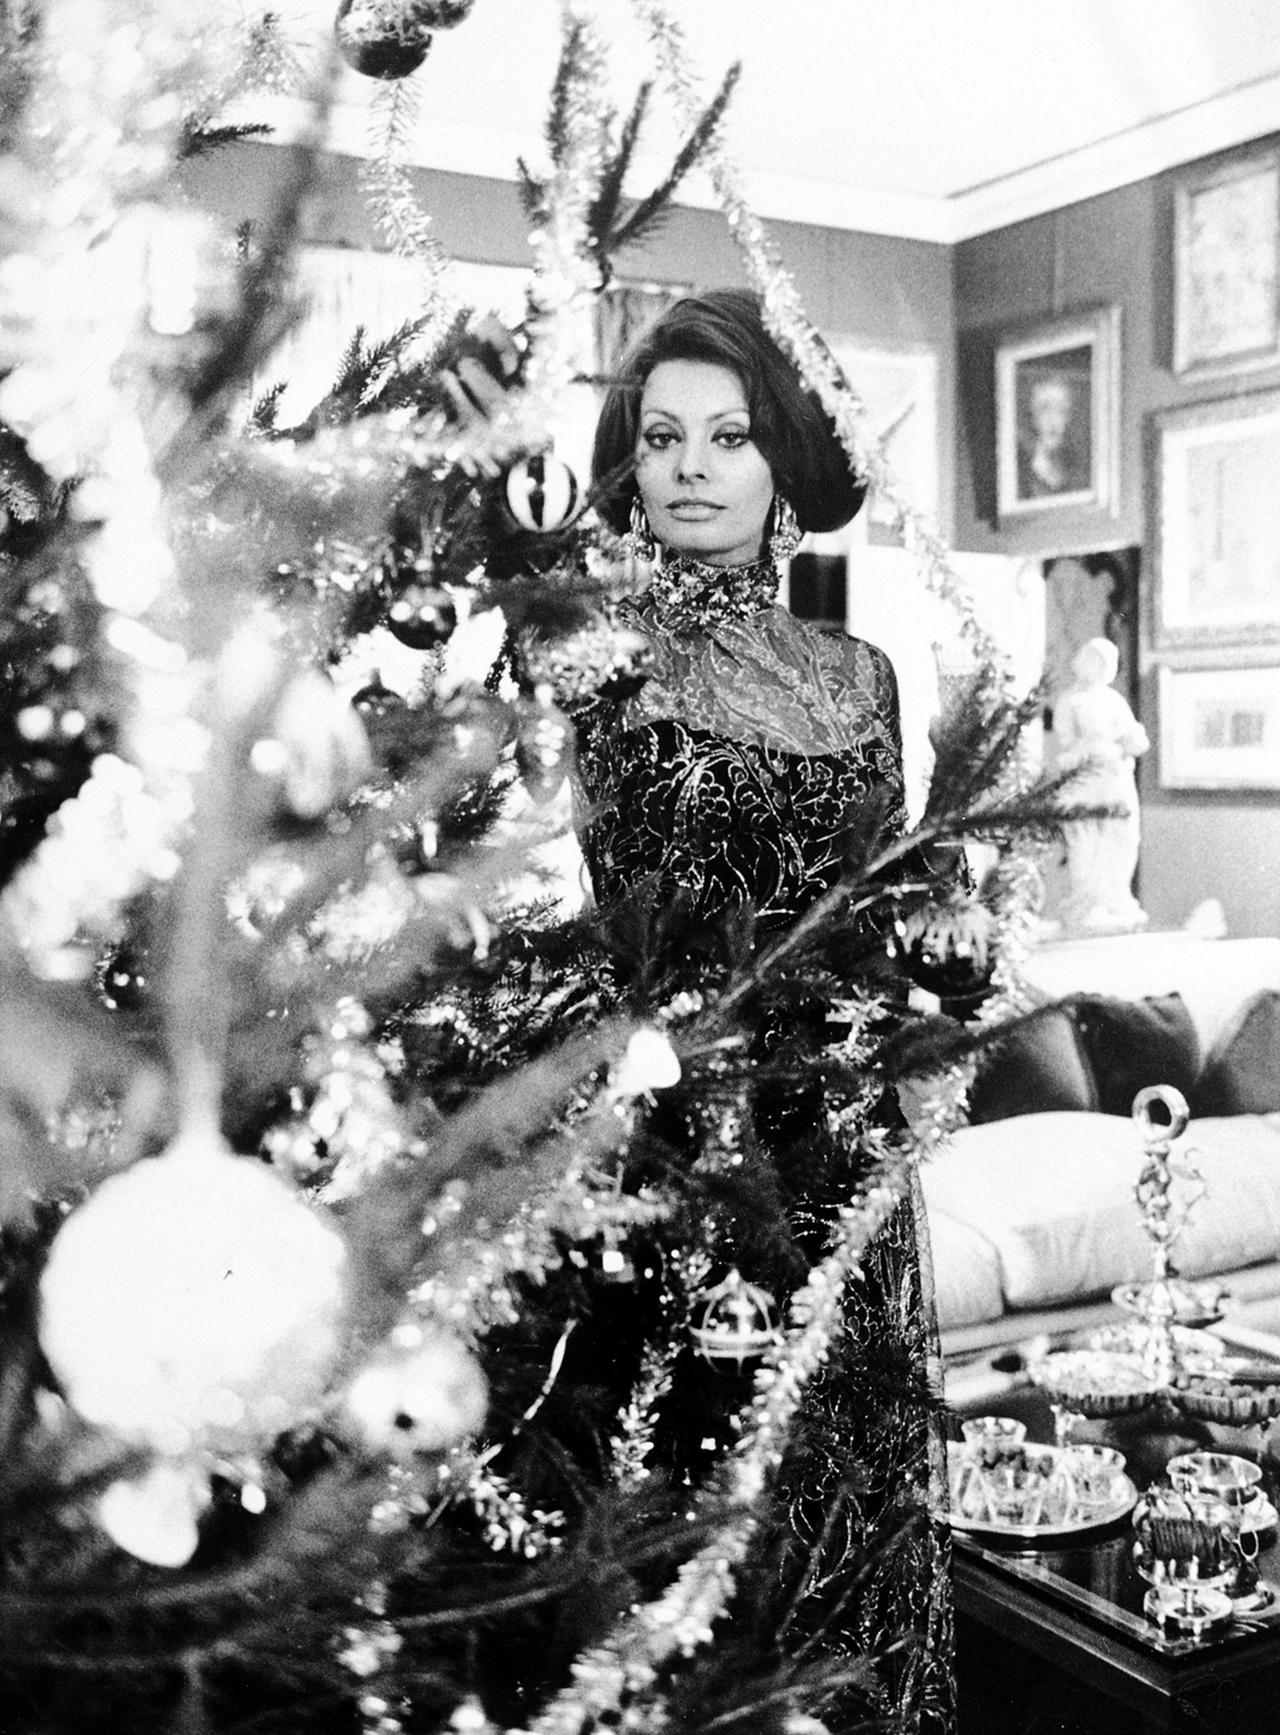 Merry Christmas from Sophia Loren